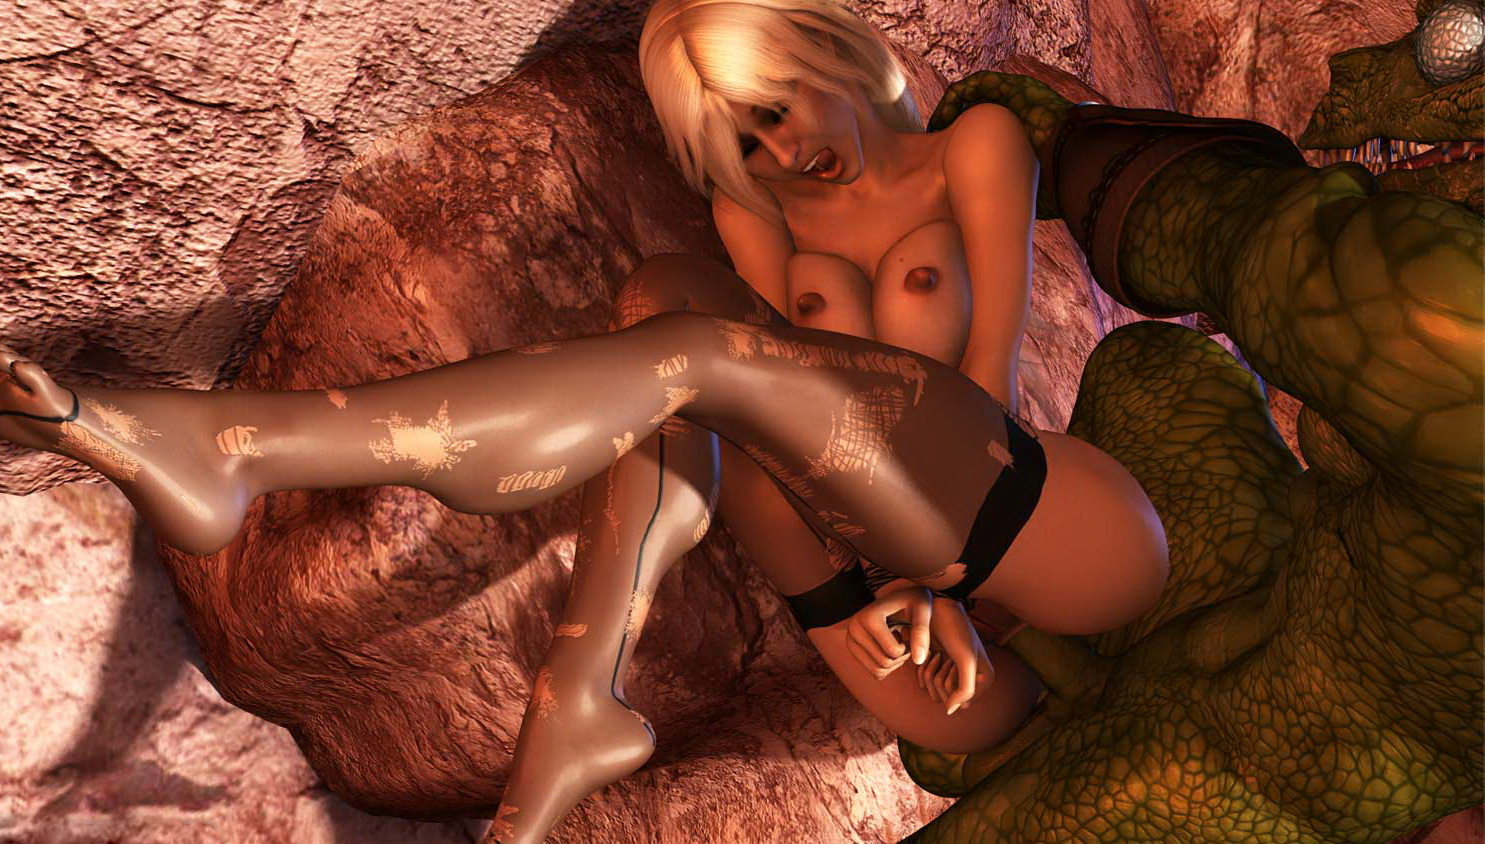 3d animated porn pic gallery cartoon videos